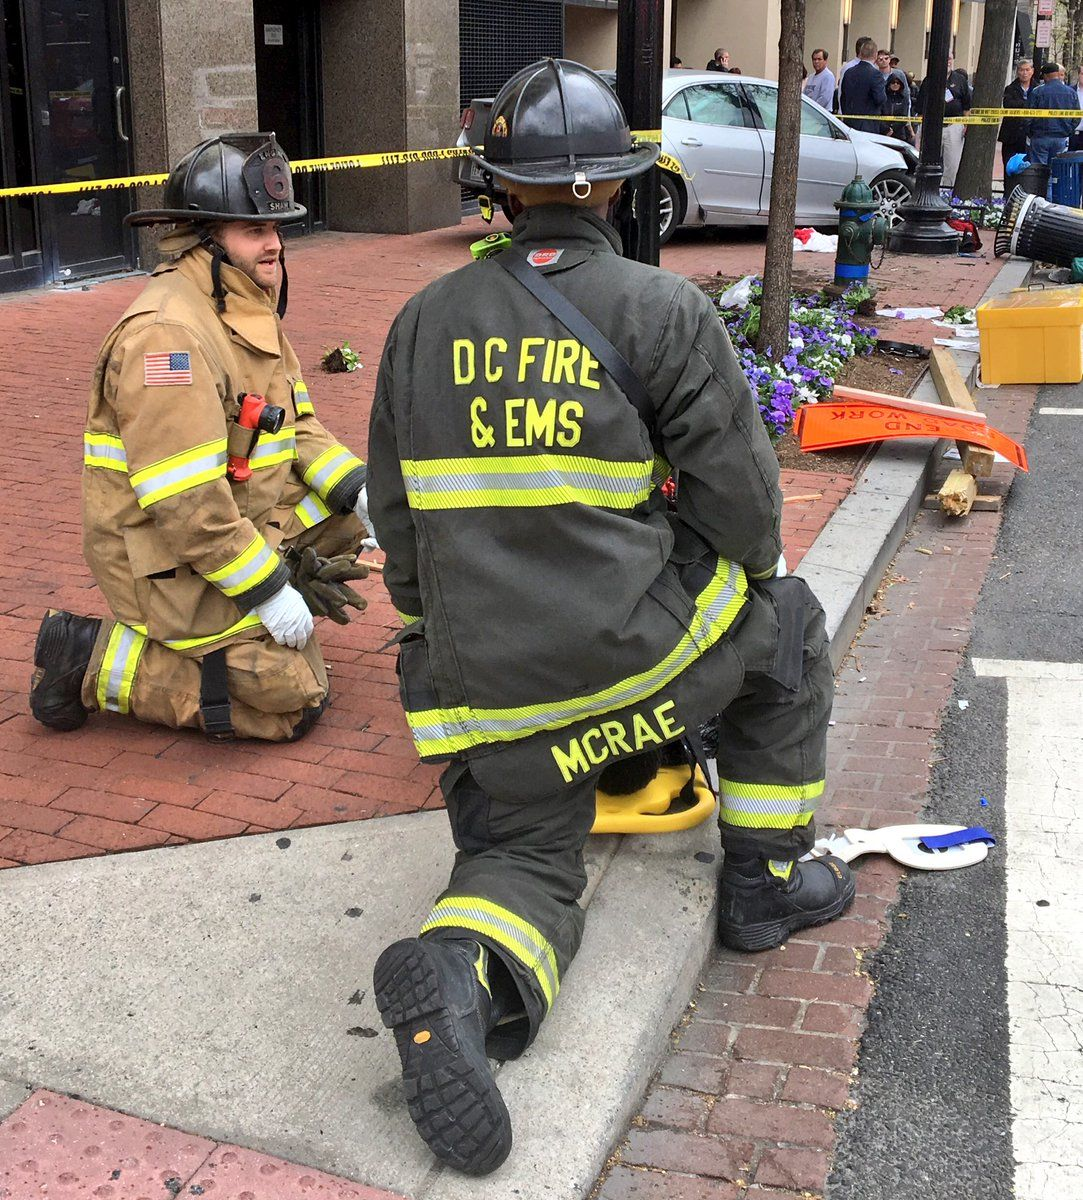 Several pedestrians are injured after a car jumped the curb and drove onto the sidewalk following a crash in downtown D.C. Tuesday. (Courtesy DC Fire and EMS)